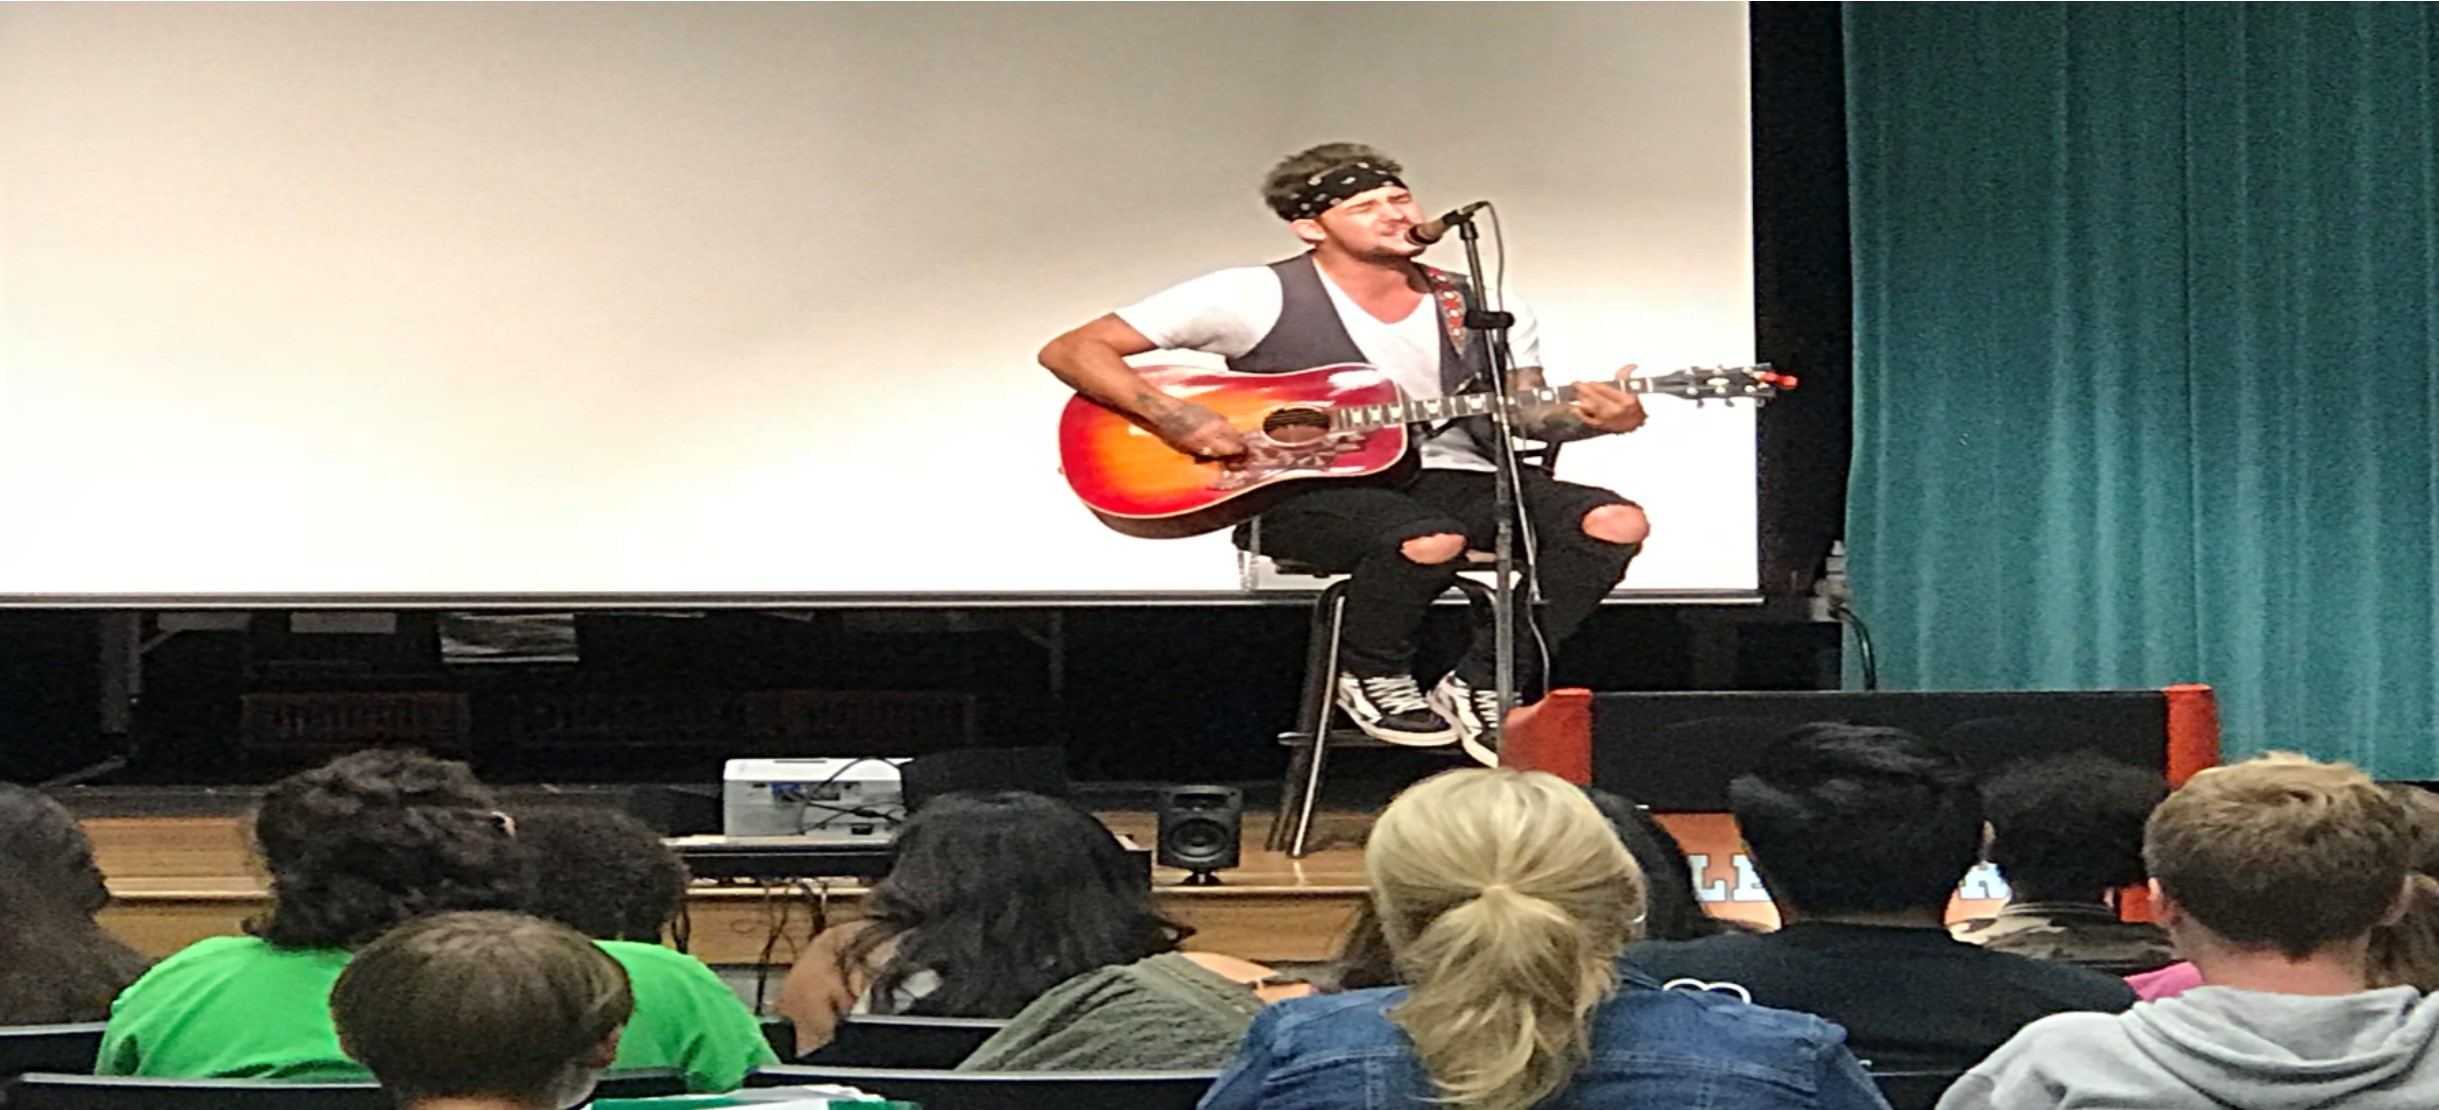 Image for Musician James Durbin shares his Story and Struggles with ESE Students